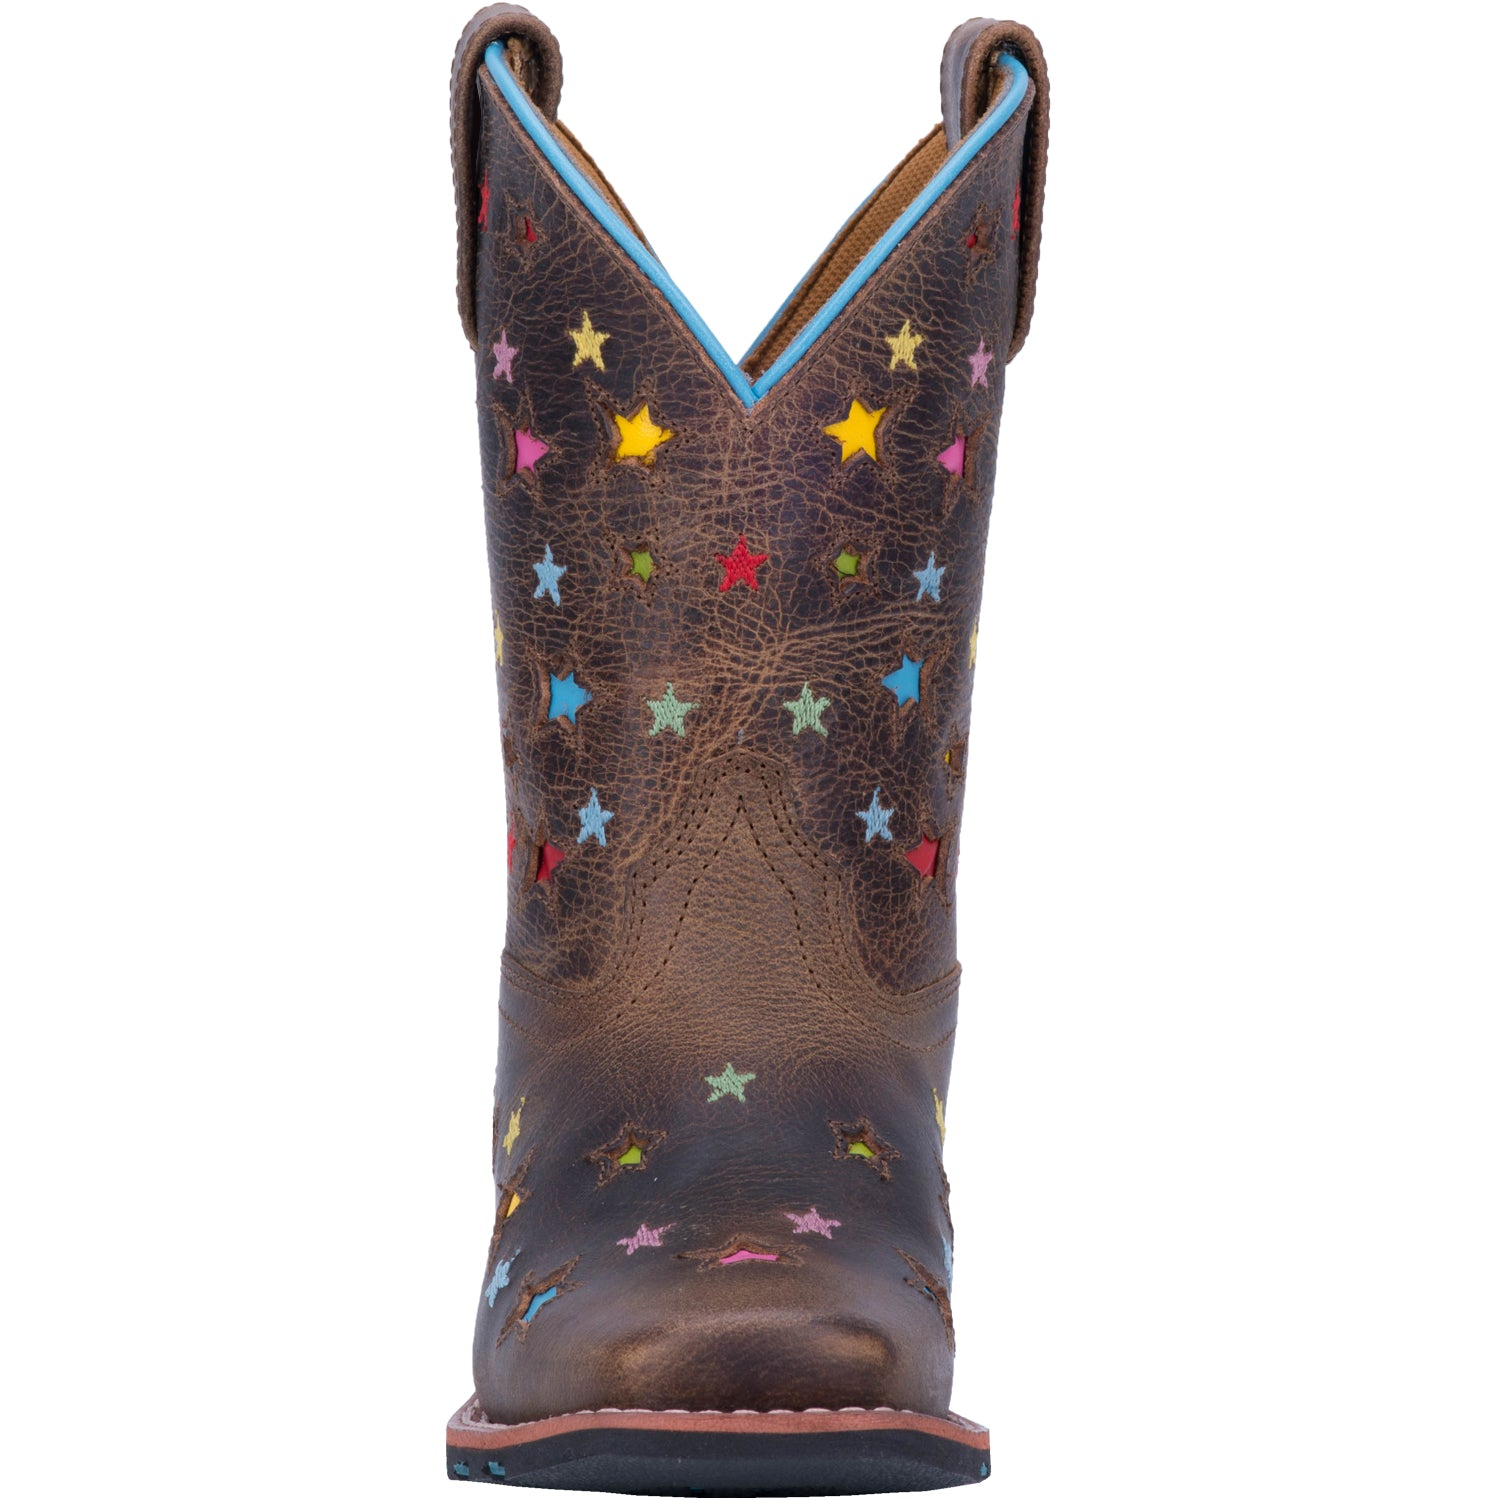 STARLETT LEATHER YOUTH BOOT 15521816870954